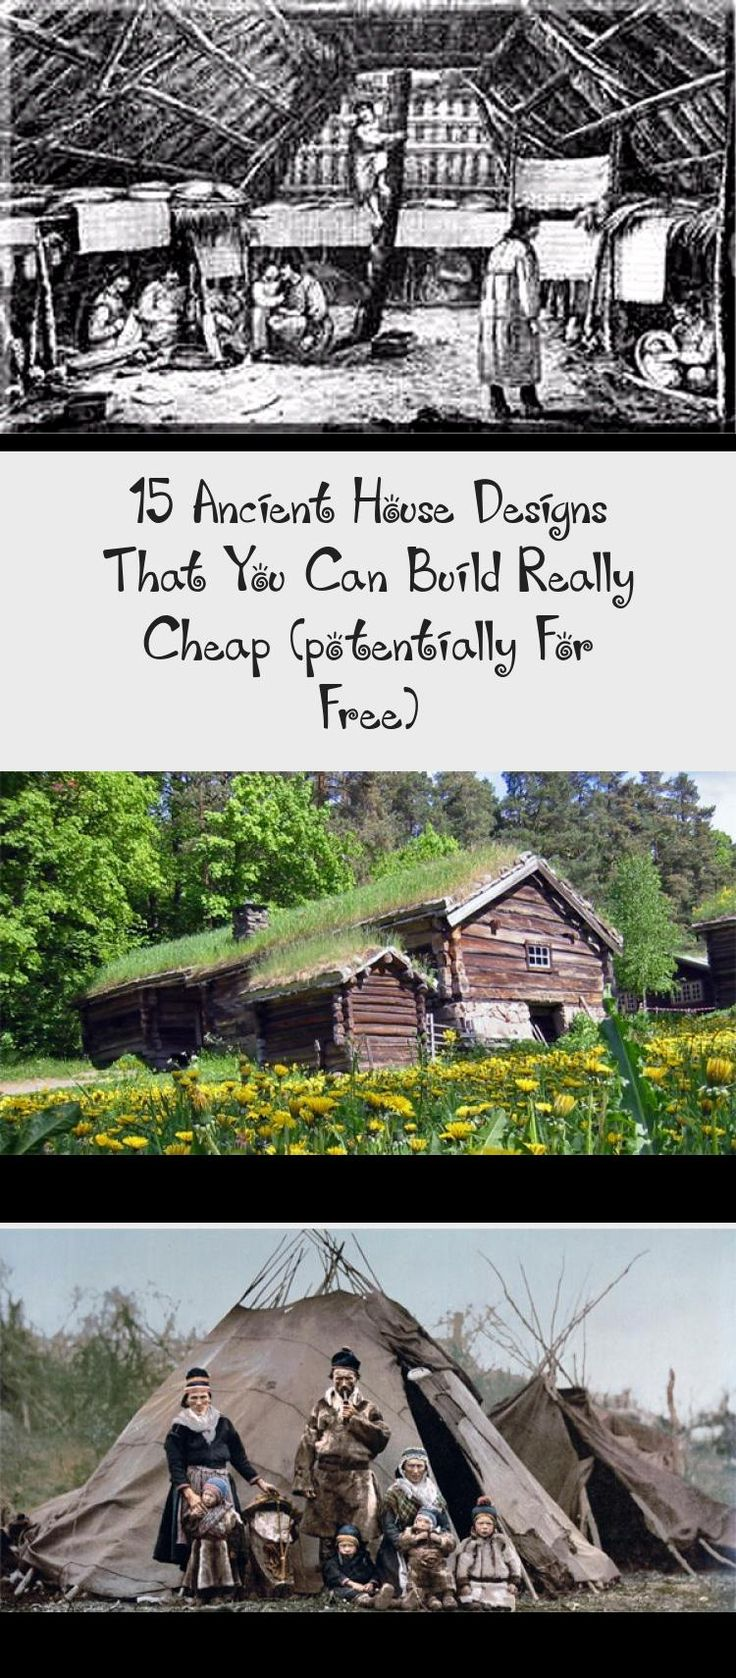 15 Ancient House Designs That You Can Build Really Cheap Potentially For Free In 2020 Native American Houses Ancient Houses Cheap Houses